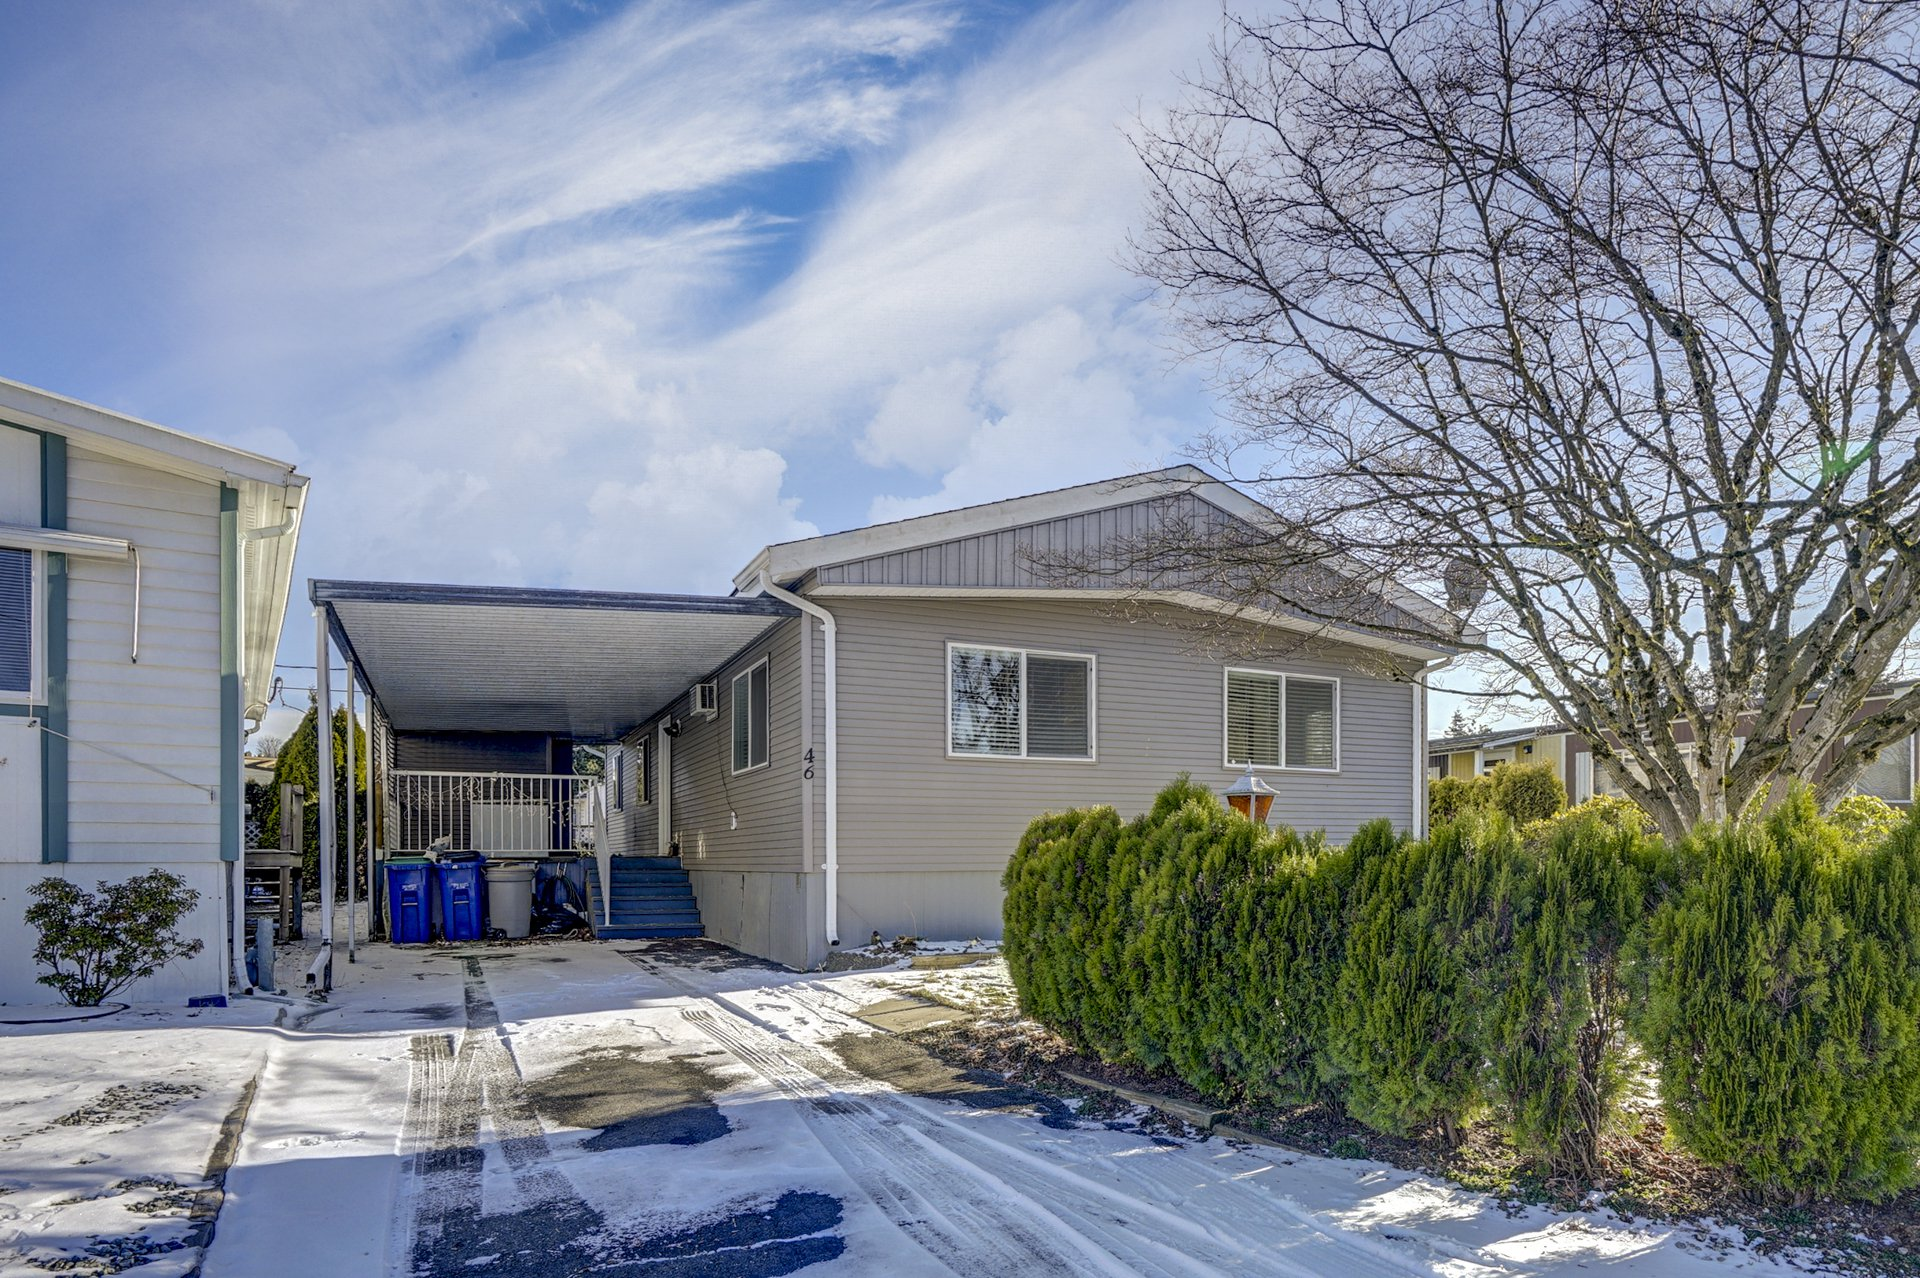 Main Photo: 46 31313 Livingstone Avenue in Abbotsford: Abbotsford West Manufactured Home for sale : MLS®# R2337850